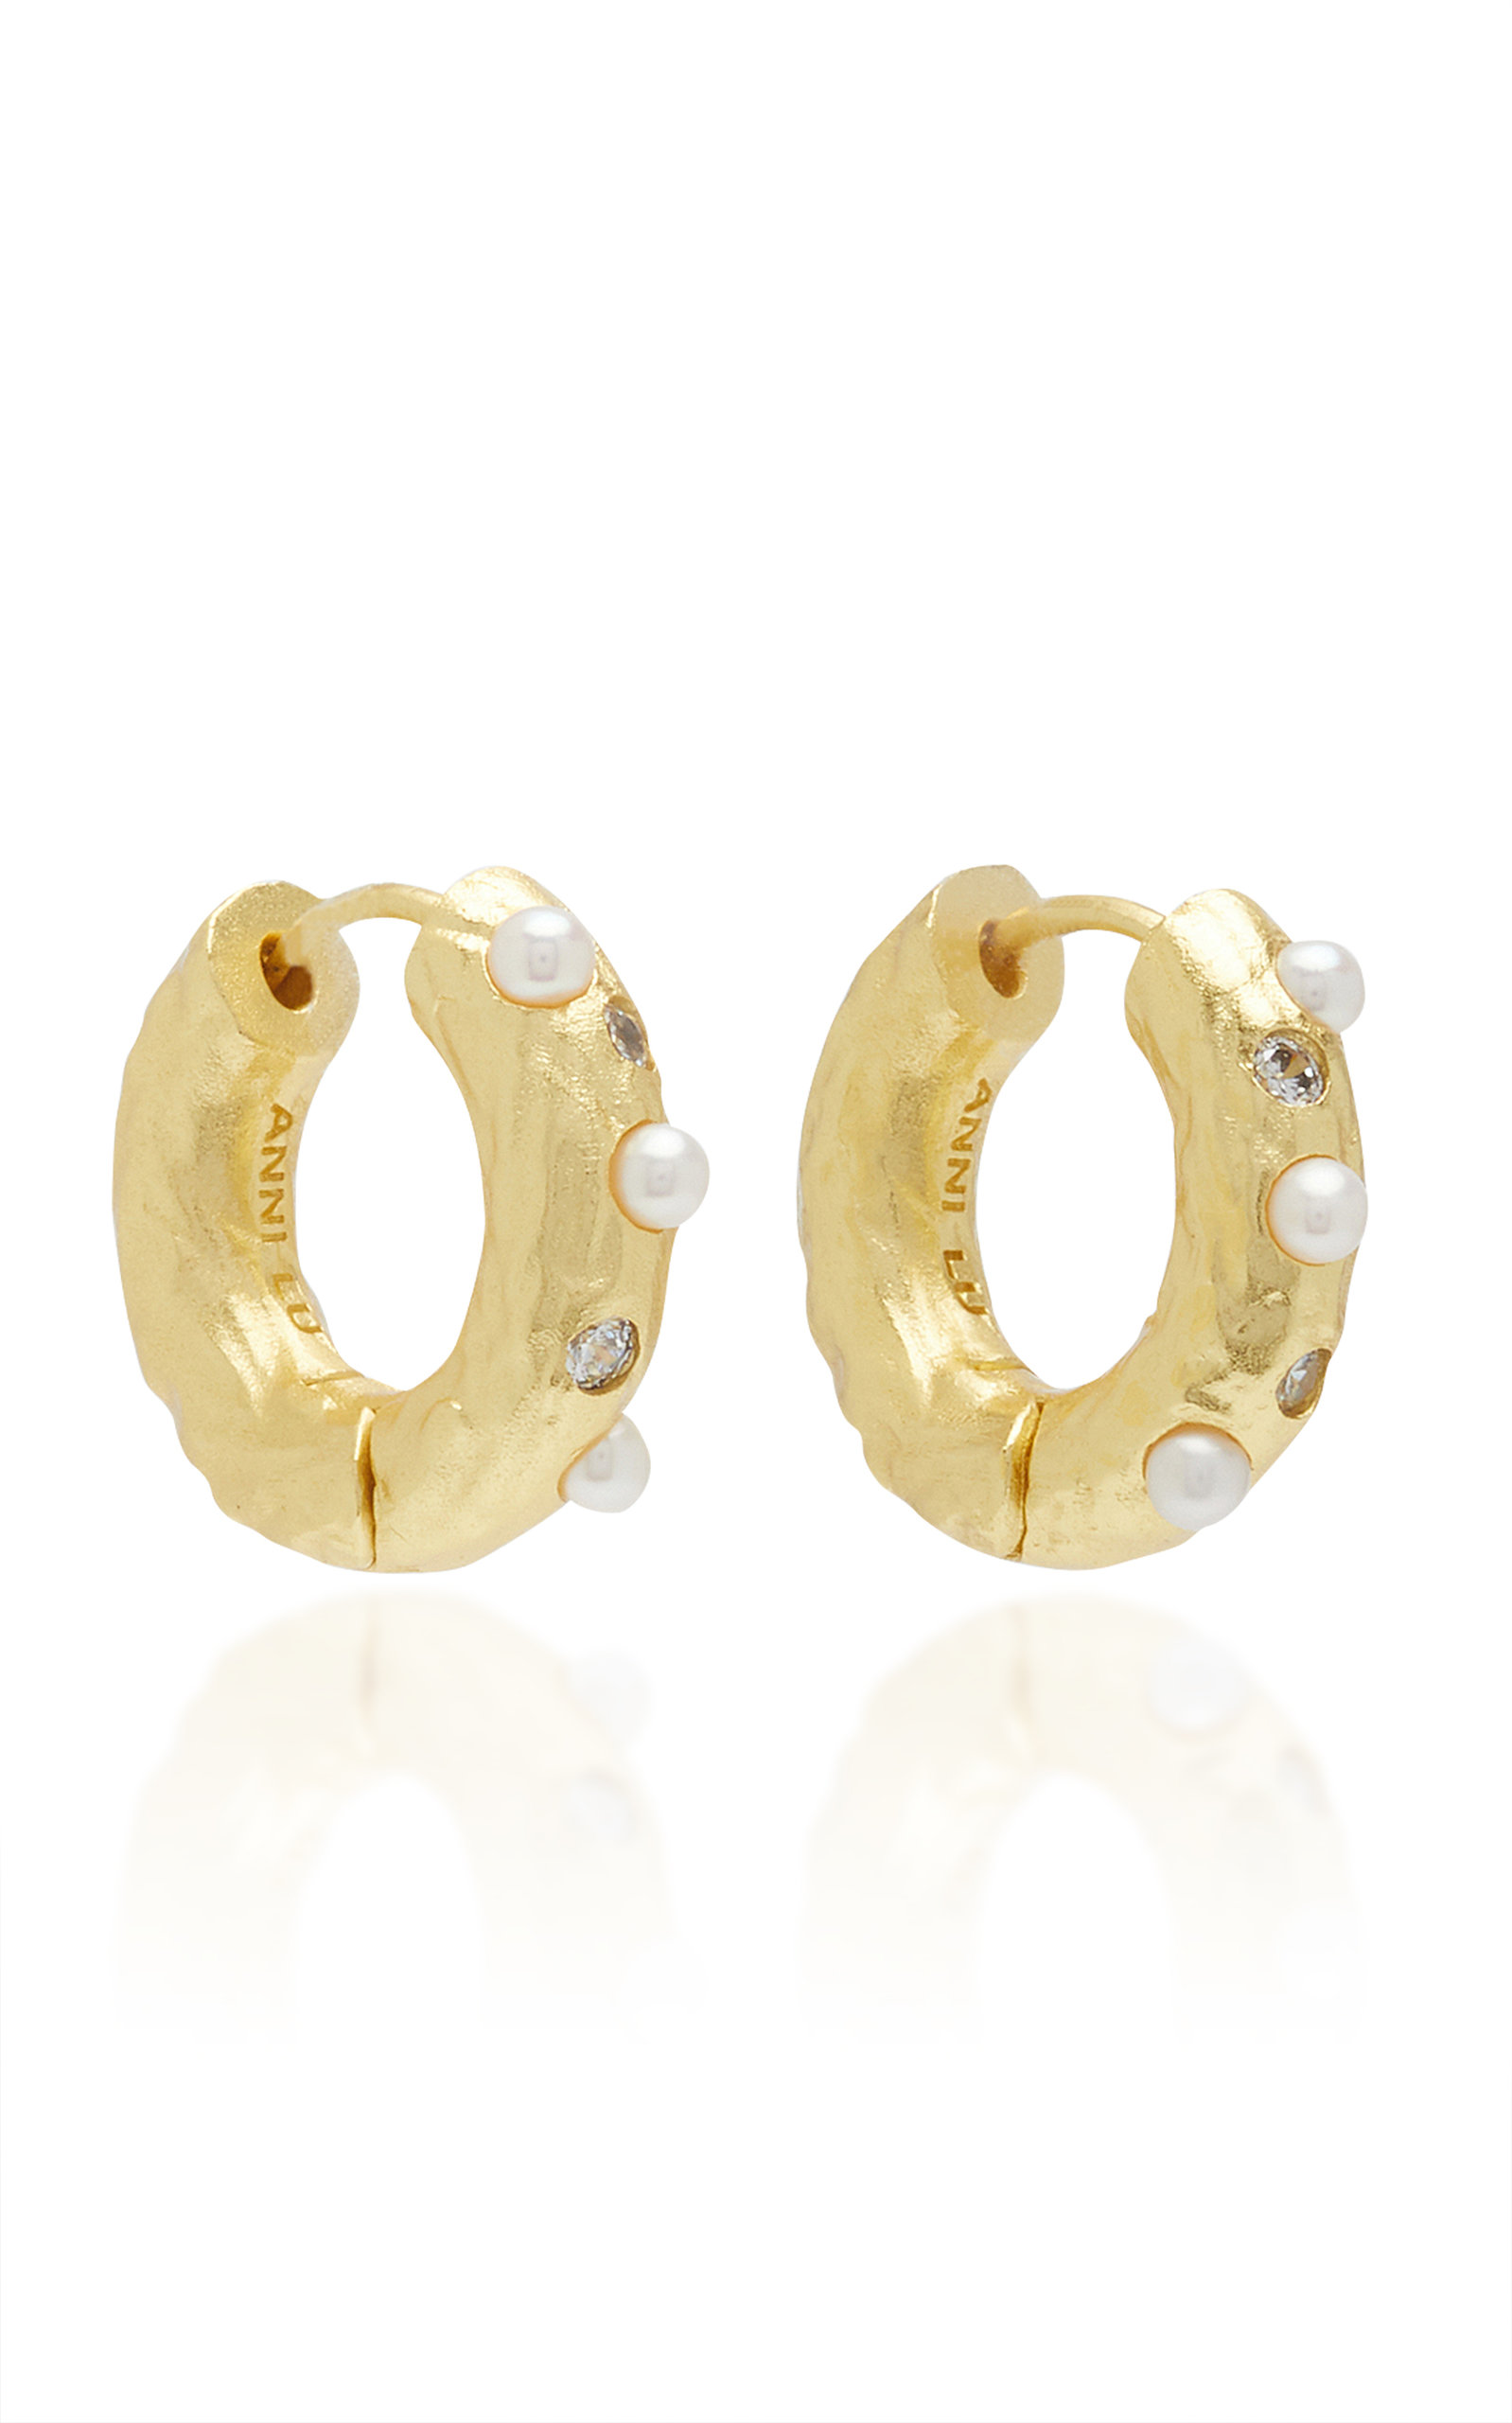 Women's Gem in a Hoop Pearl and Crystal 18K Gold-Plated Earrings